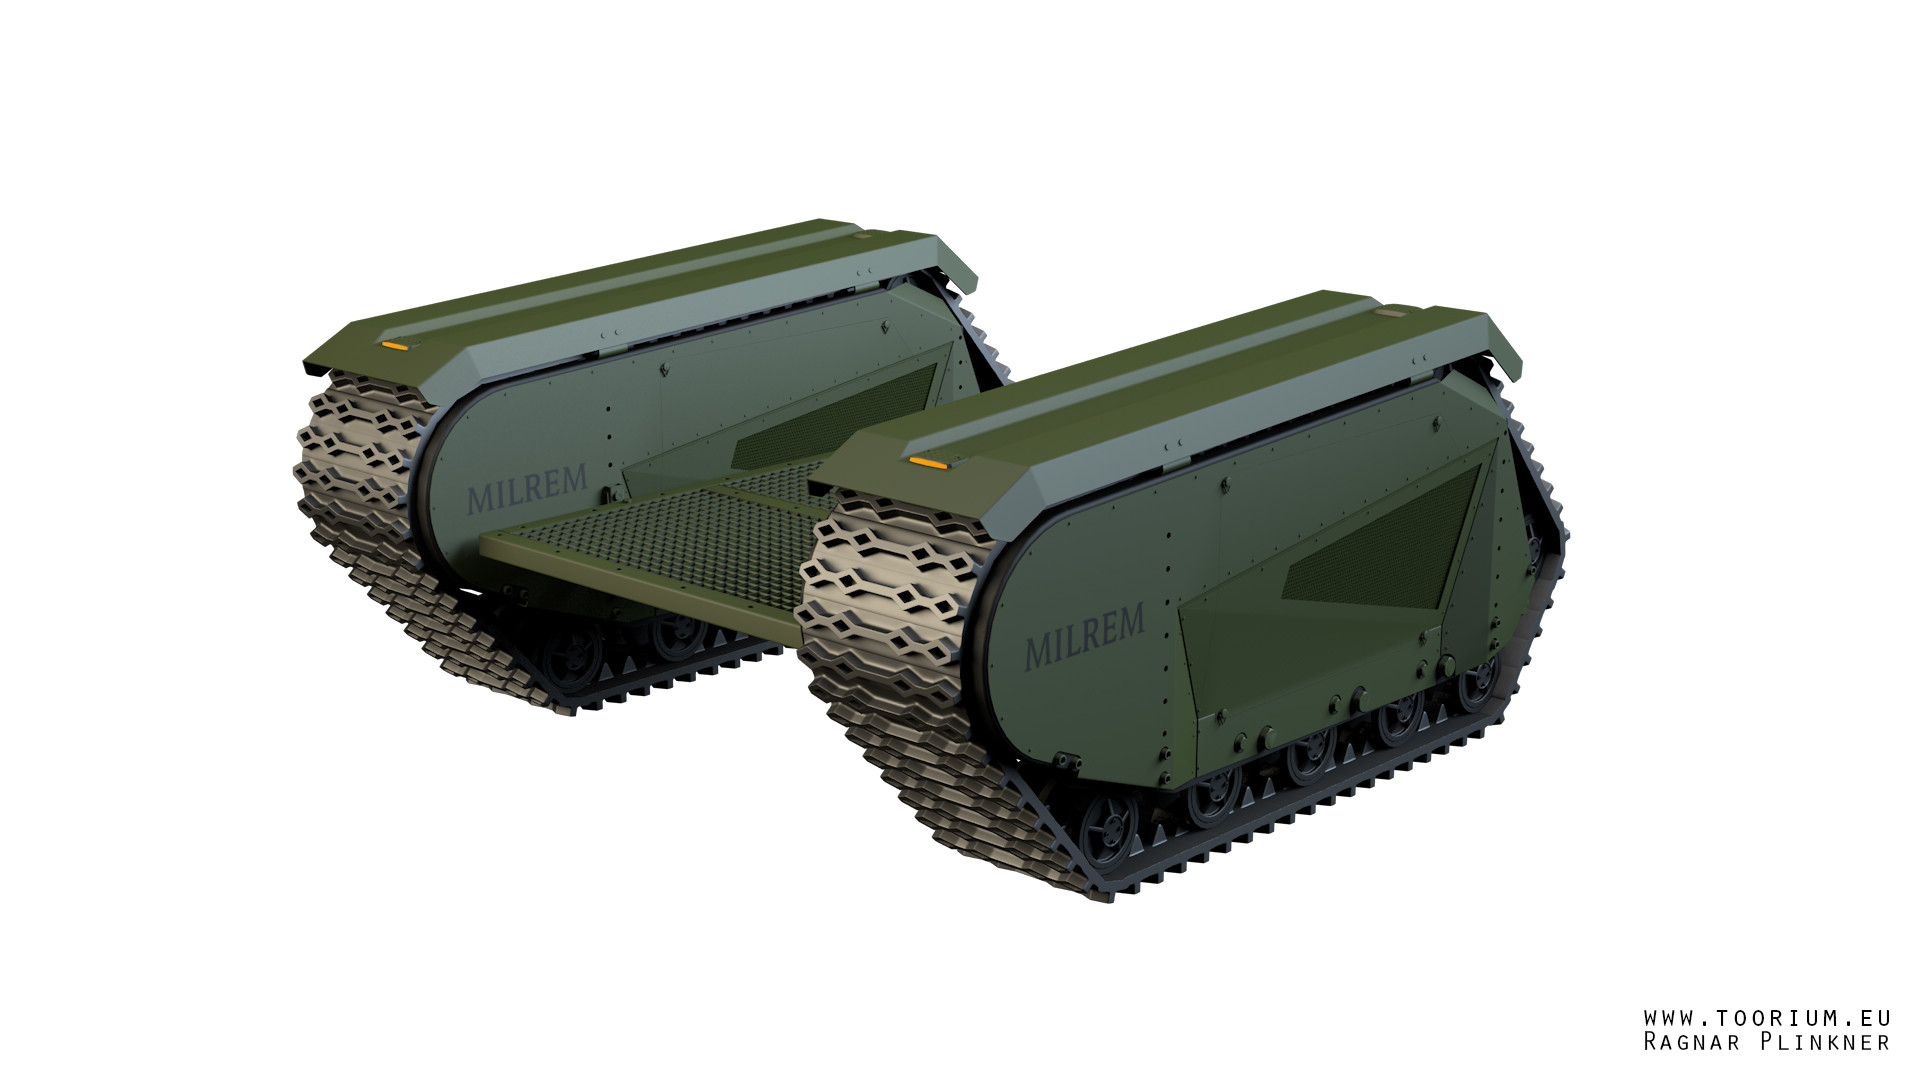 Ragnar plinkner ugv military base